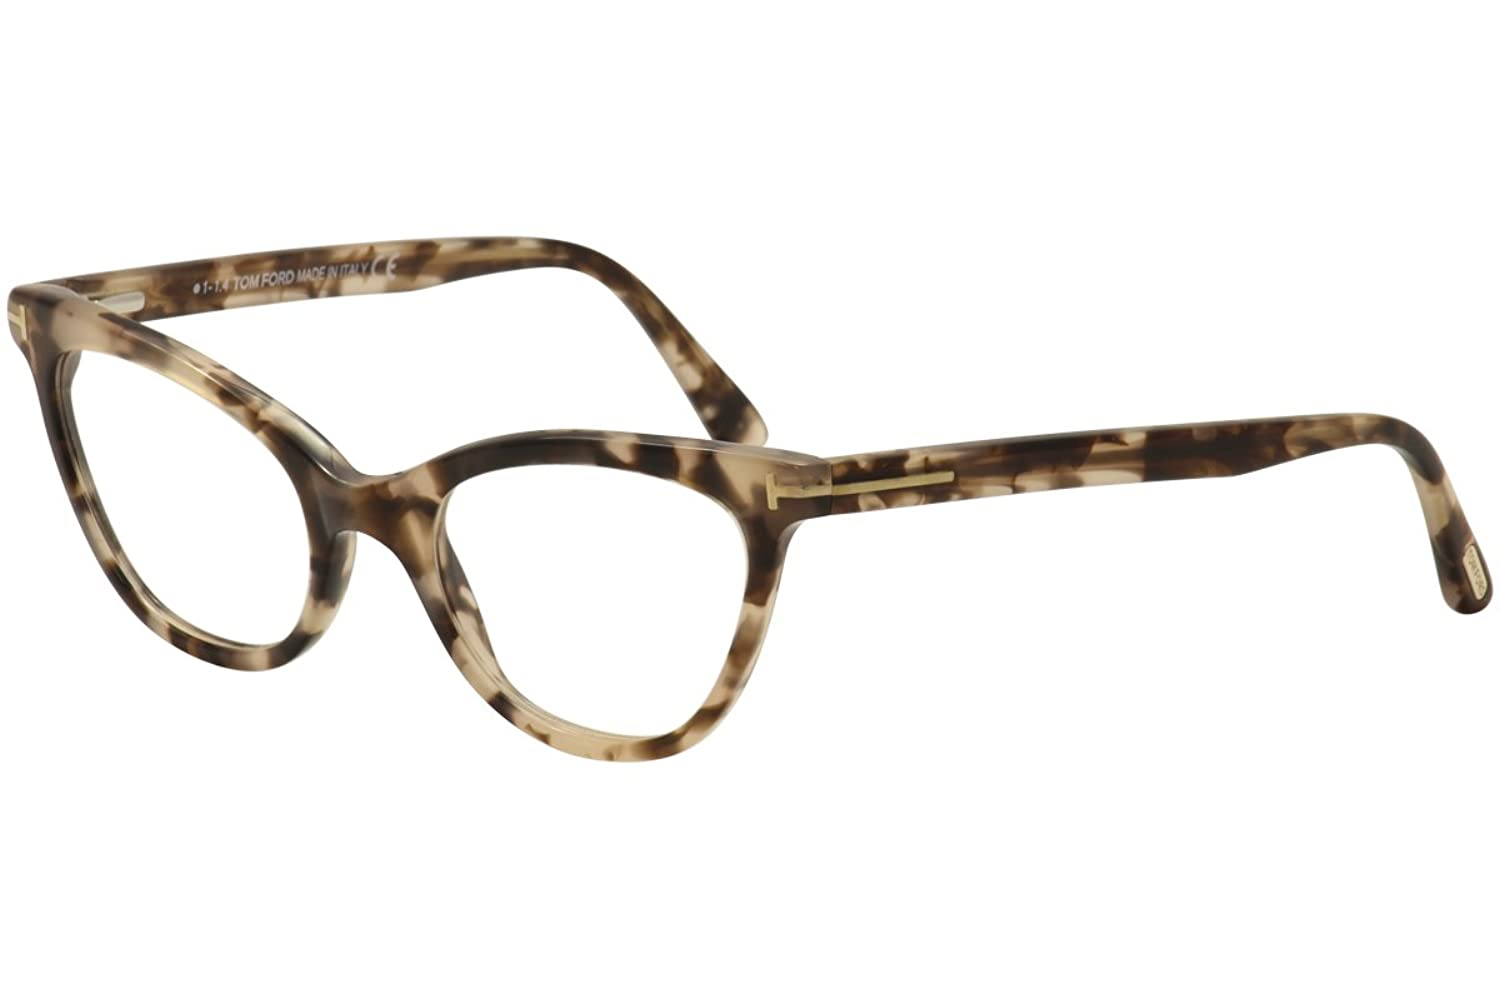 6d6e389de02 NEW AUTHENTIC TOM FORD TF5271 072 Pink White Cat-eye Eyeglasses ITALY   TF1044. TOM FORD TF 5271 074 PINK HAVANA EYEGLASSES AUTHENTIC RX FRAMES ...